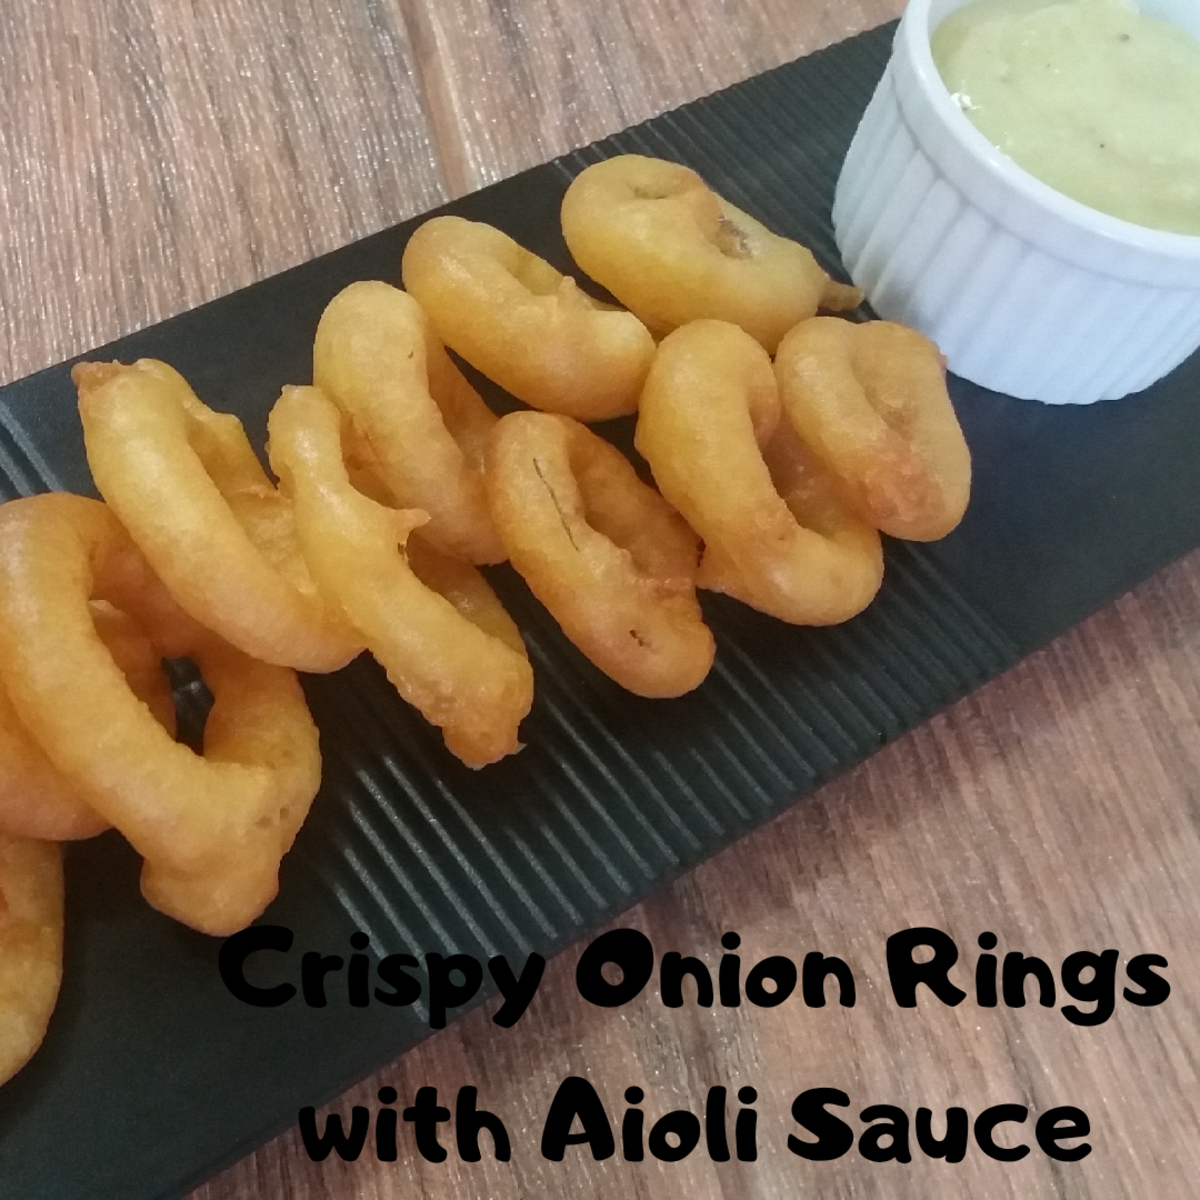 How to Make Crispy Onion Rings With Aioli Sauce